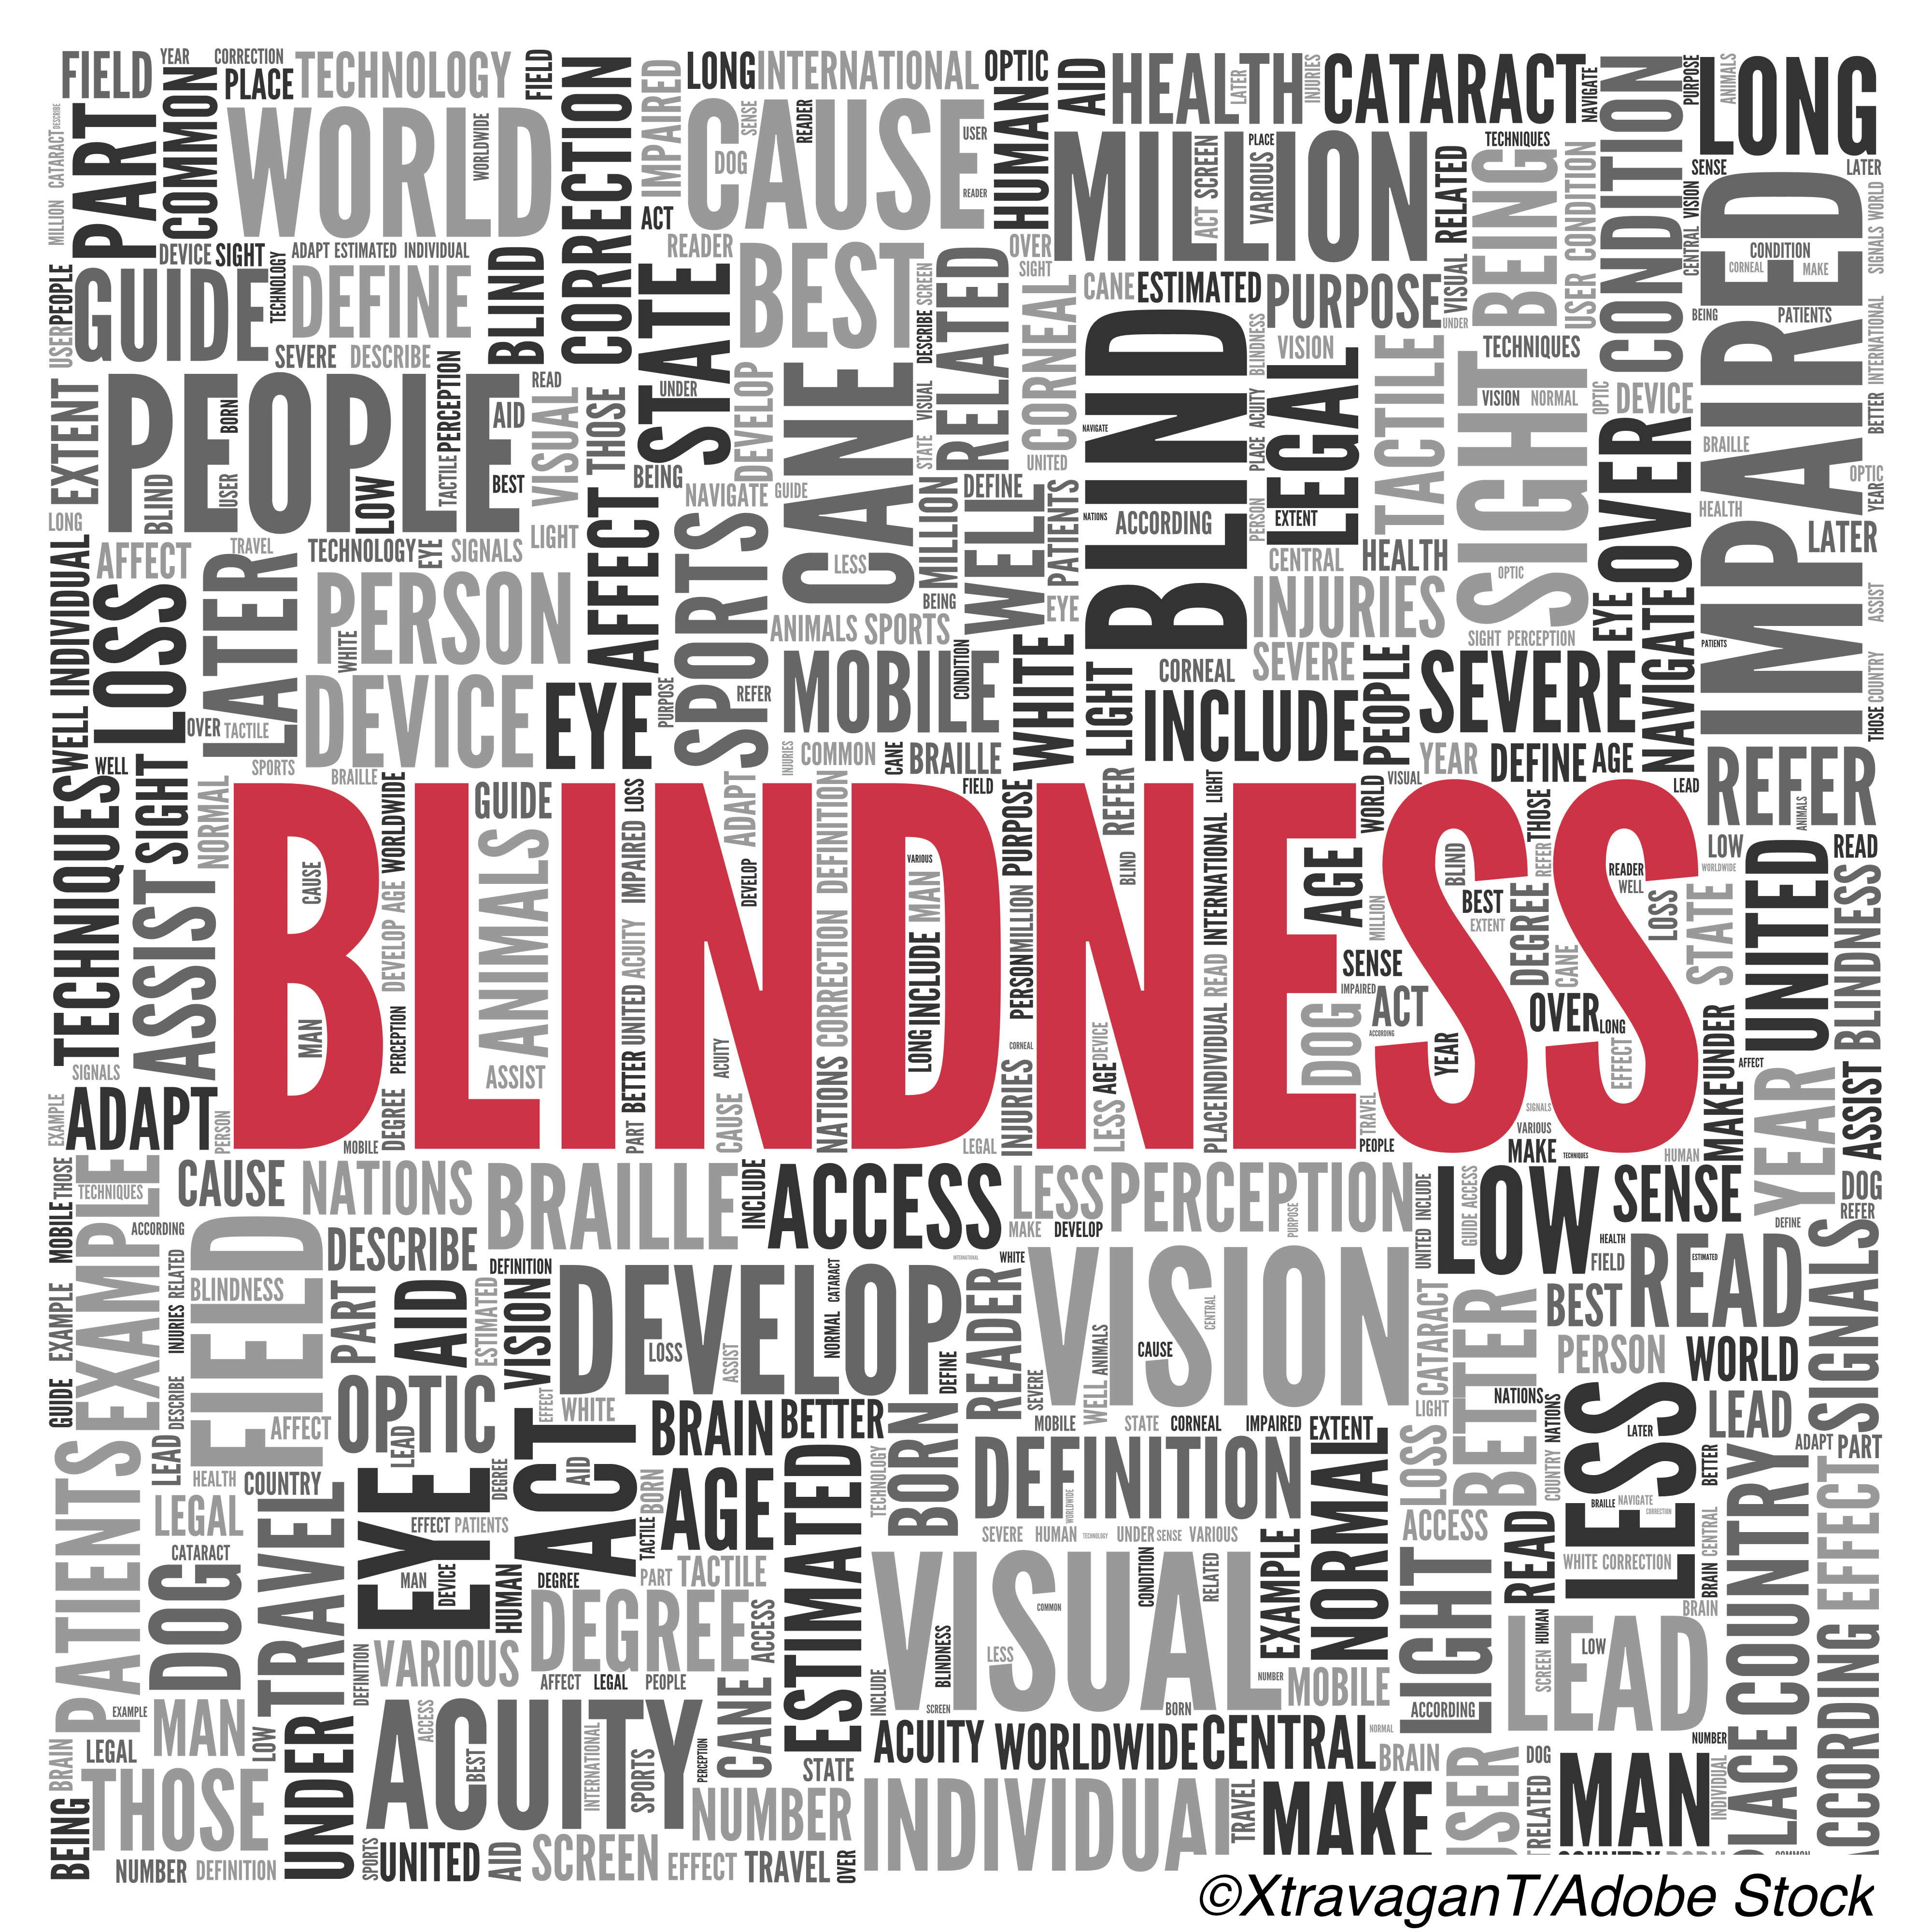 Visual Acuity, Blindness May Be More Prevalent Than Expected